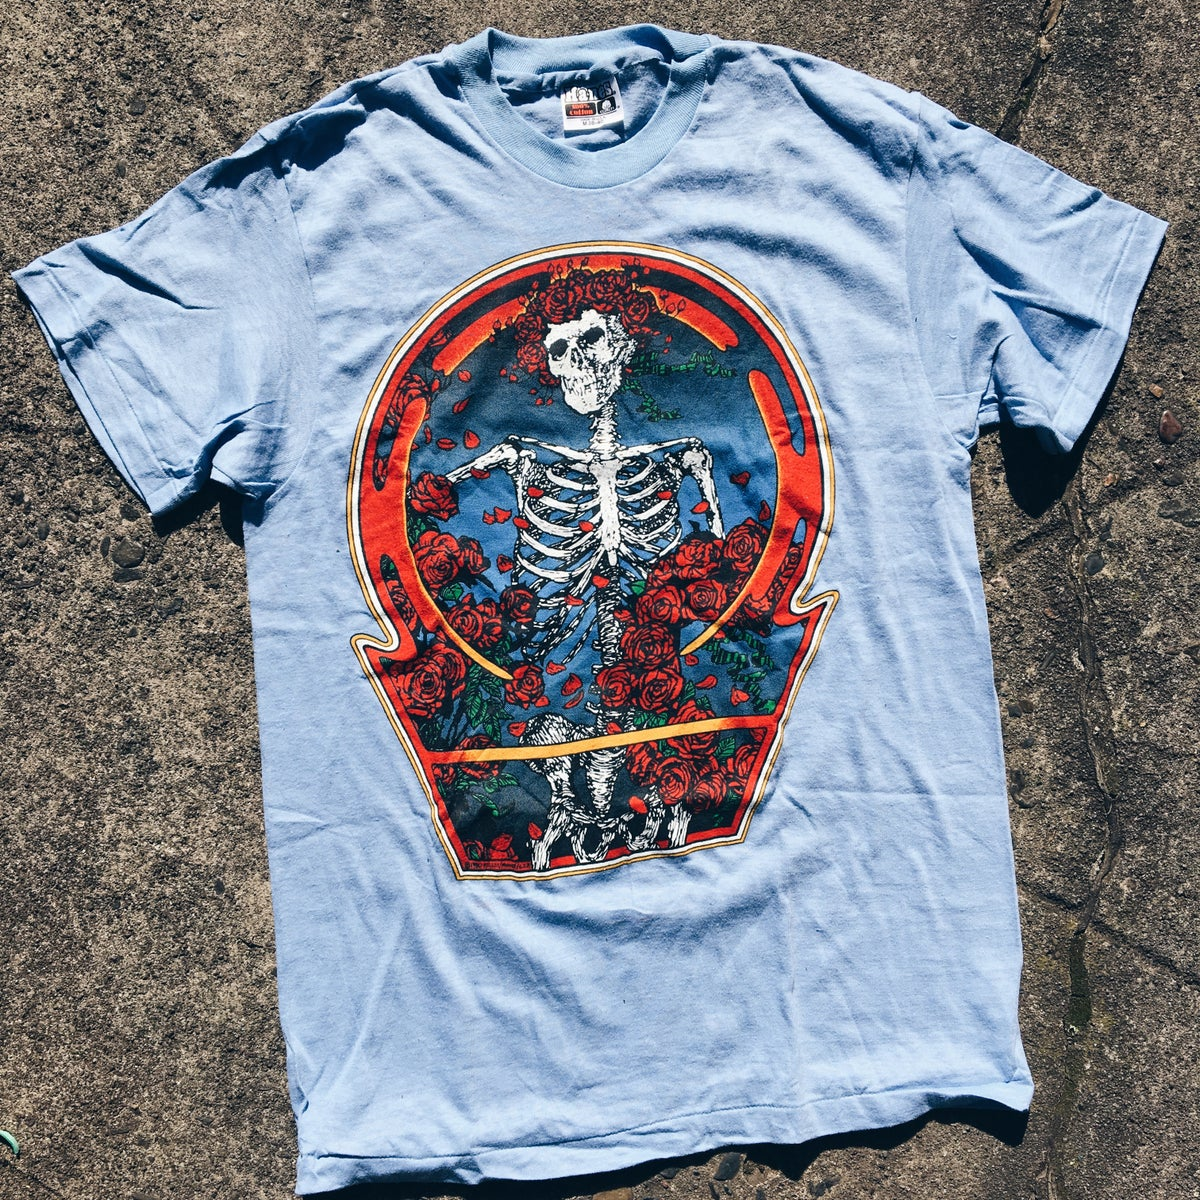 Image of Original 1980 Grateful Dead Tee.